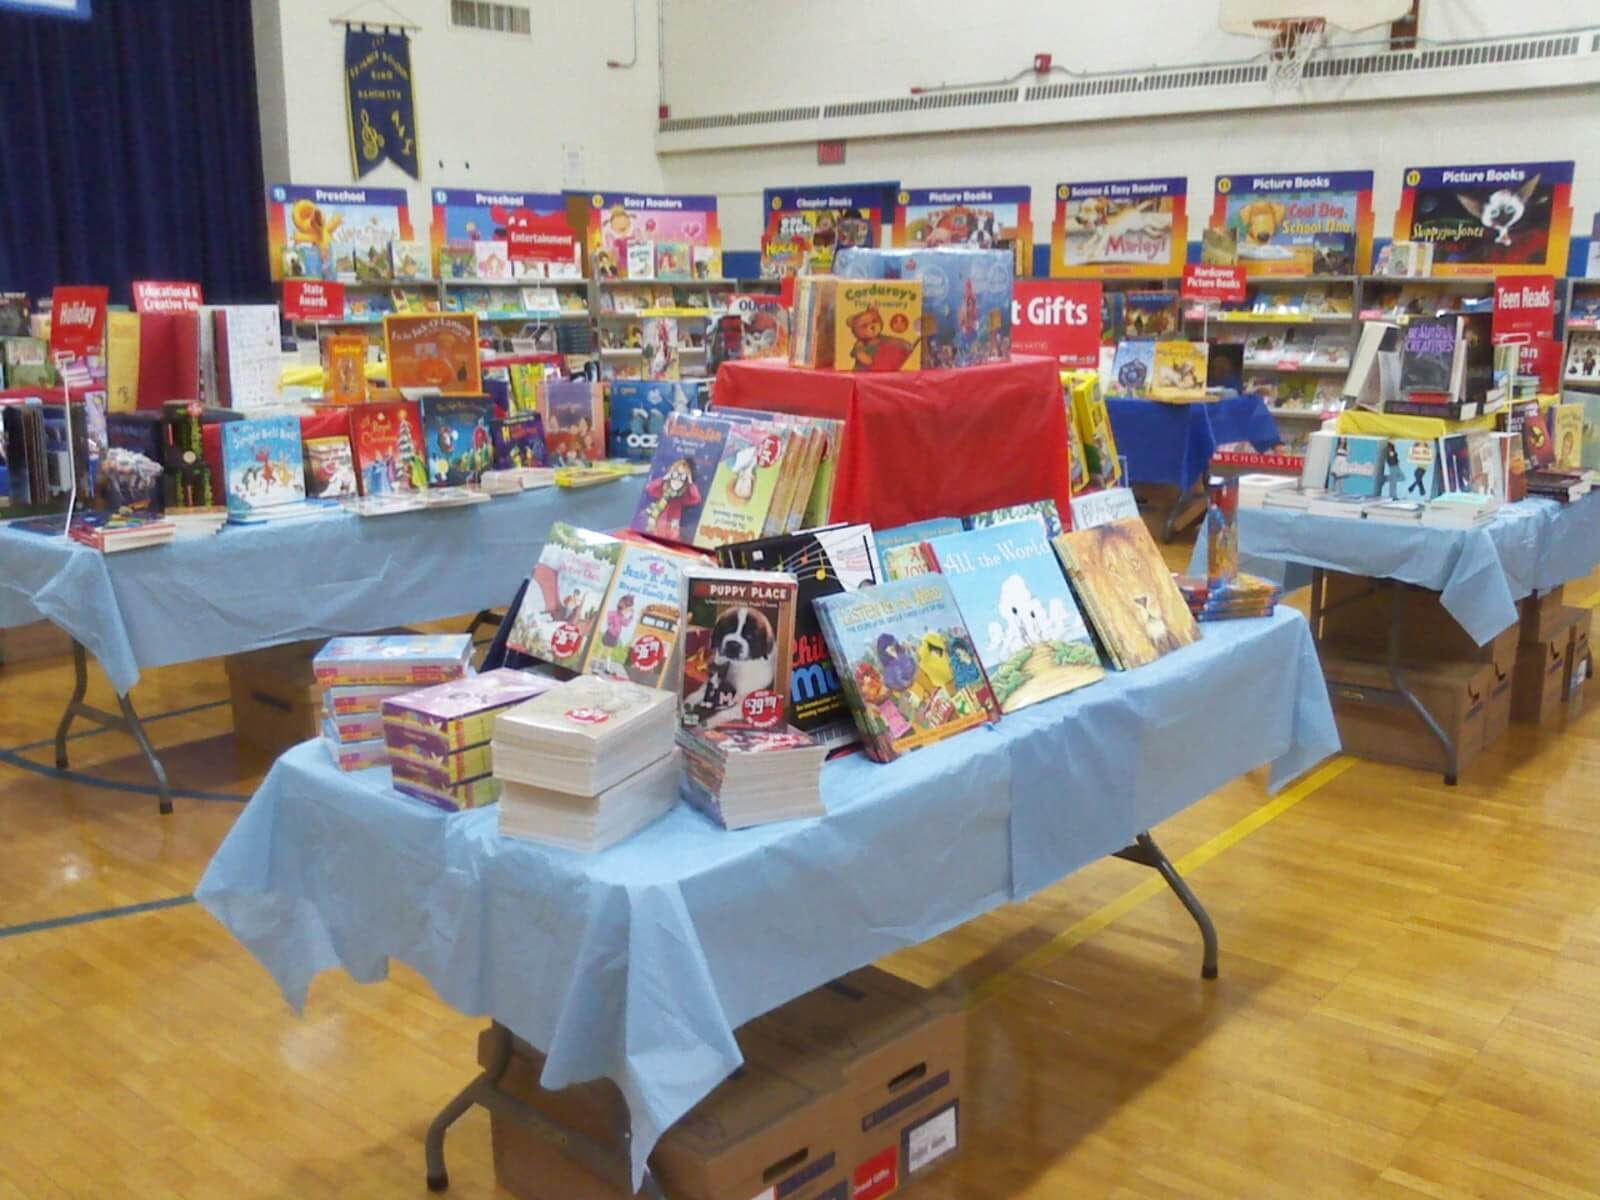 Photo of table with books displayed at a Scholastic Book Fair